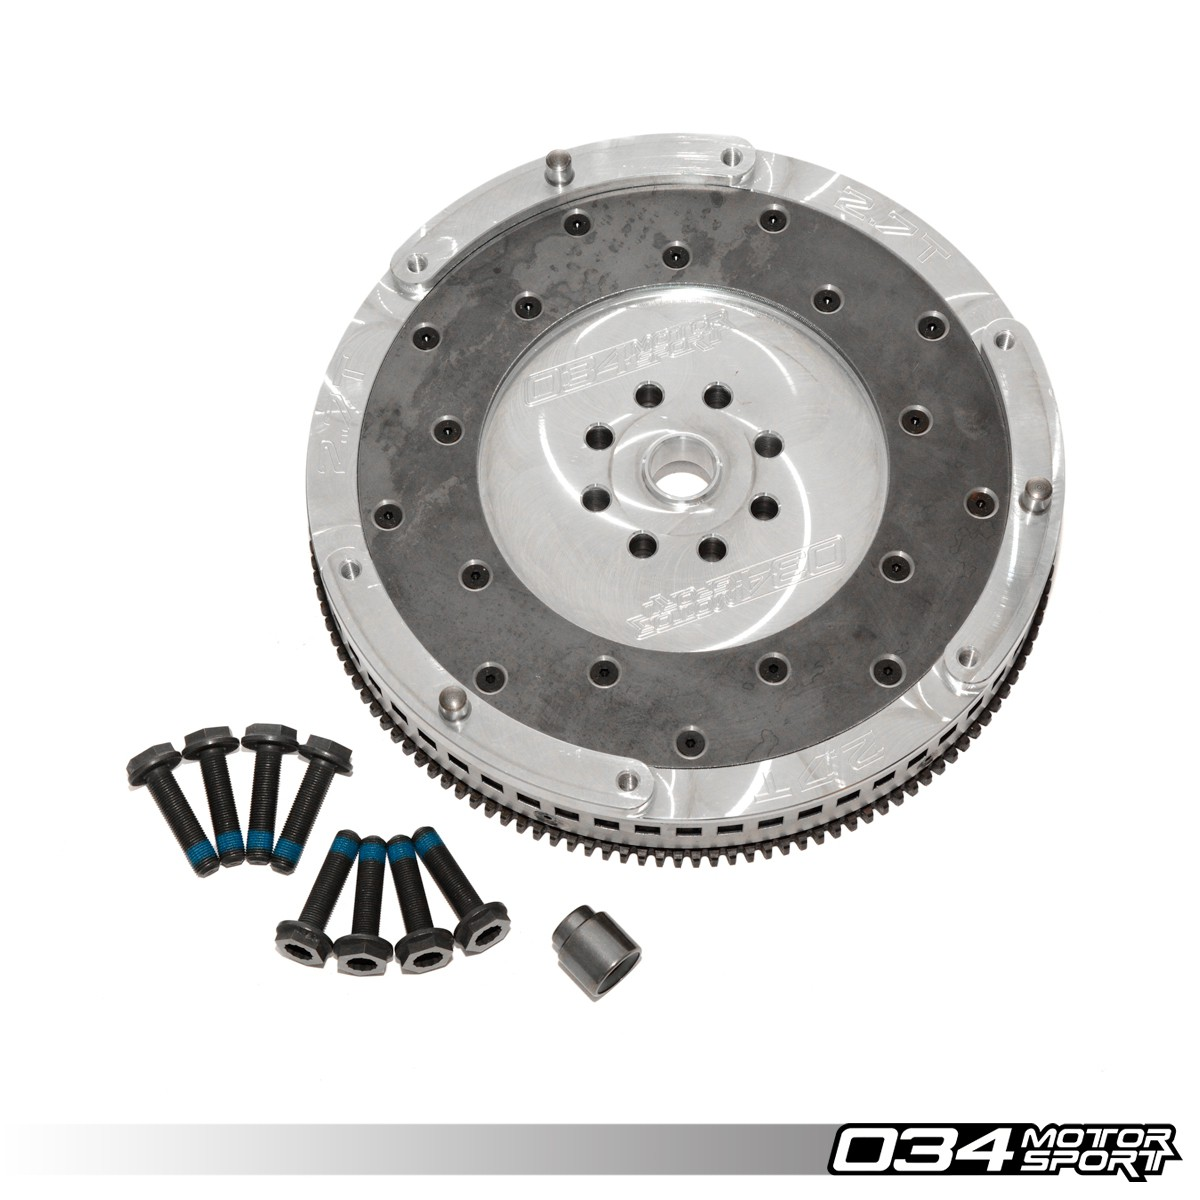 Lightweight Single-Mass Aluminum Flywheel Upgrade for B5 Audi S4 & C5 Audi  A6/